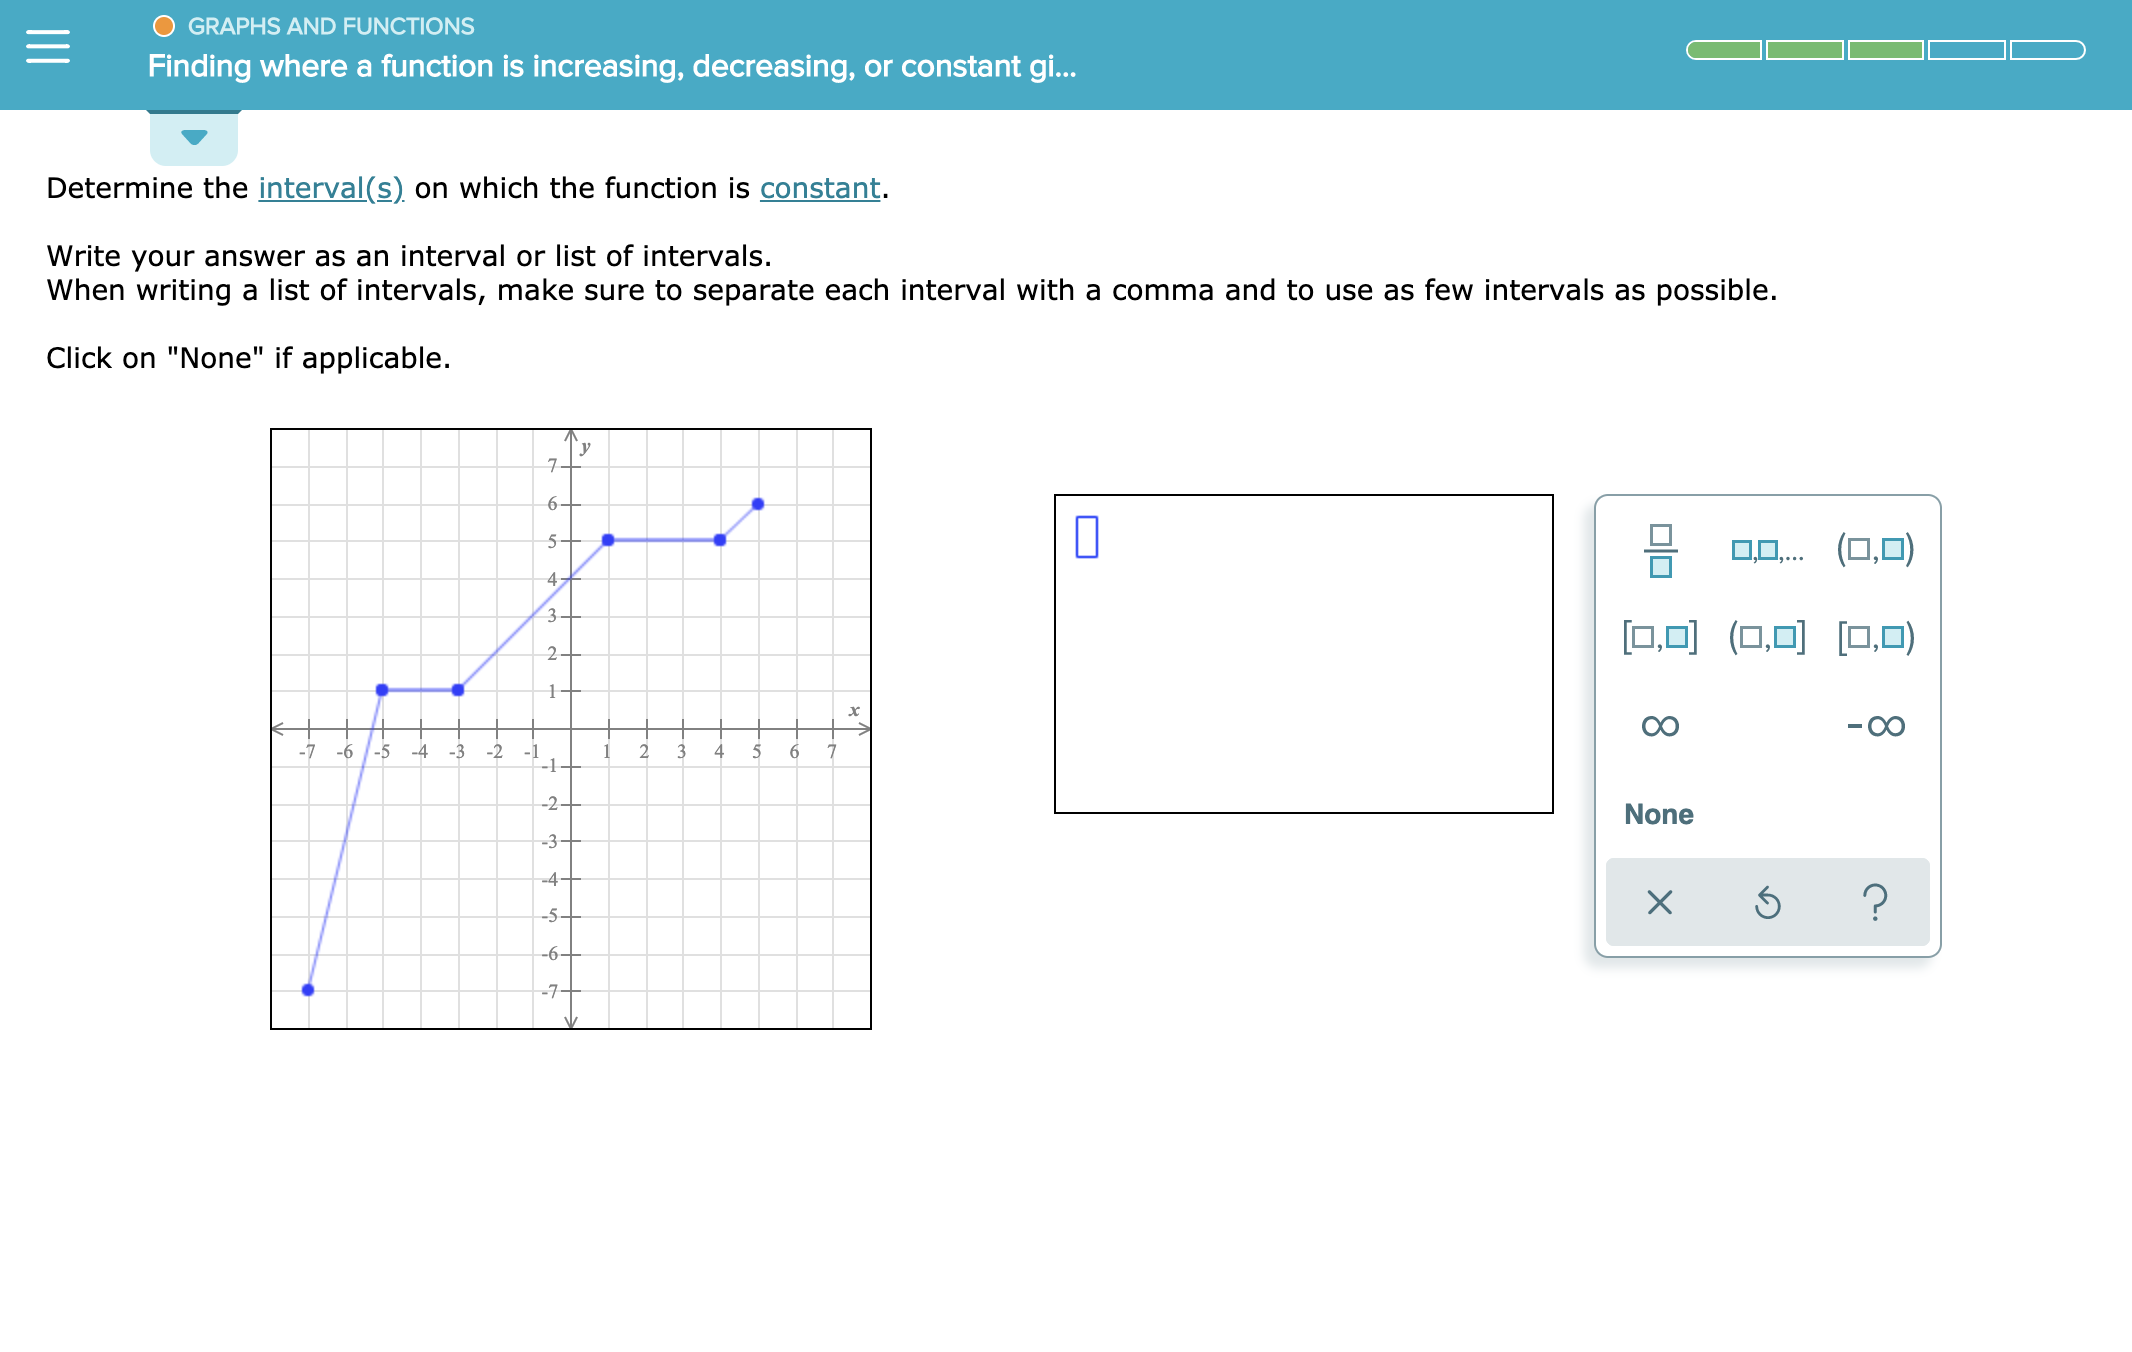 """GRAPHS AND FUNCTIONS Finding where a function is increasing, decreasing, or constant gi... Determine the interval(s) on which the function is constant. Write your answer as an interval or list of intervals. When writing a list of intervals, make sure to separate each interval with a comma and to use as few intervals as possible Click on """"None"""" if applicable у 6- -5 4 3- 0O ( ) 2 -OO -7 -6 -5 -3 -2 2 3 4 4 -1 -2+ None -3+ -4+ ? -5- -6 -7-"""